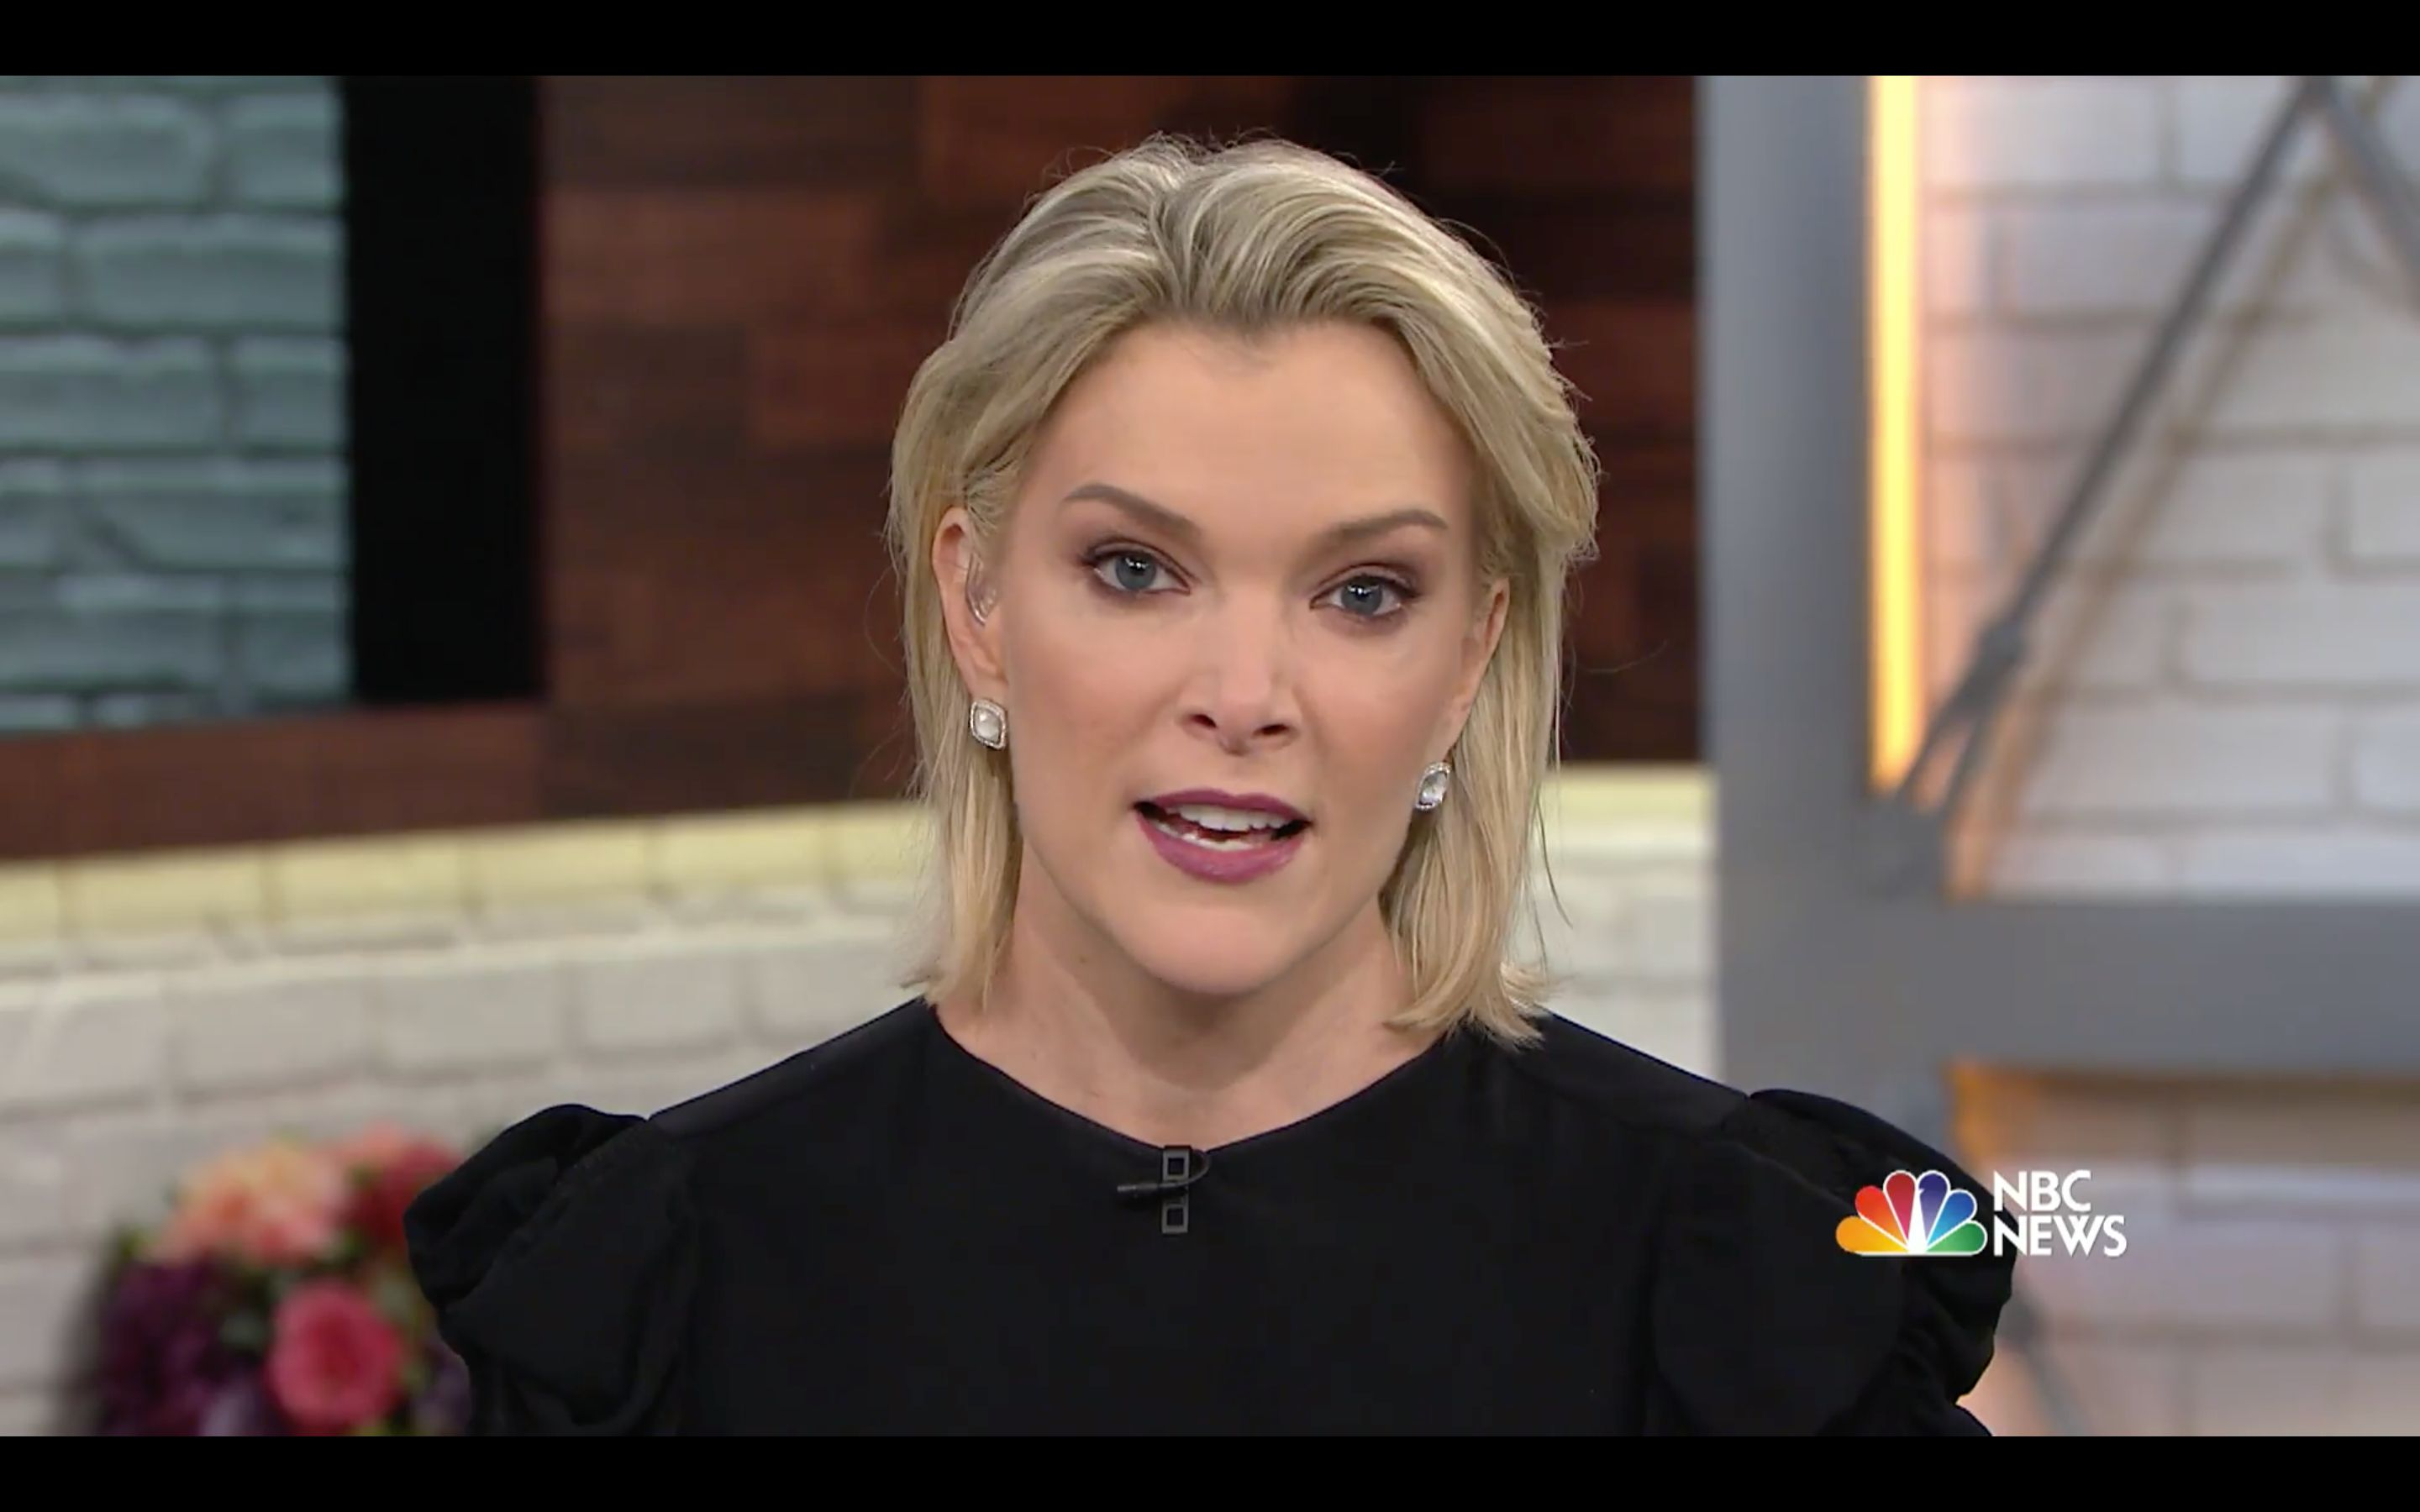 Megyn Kelly Issues On-Air Apology For Blackface Defense: 'I Was Wrong'